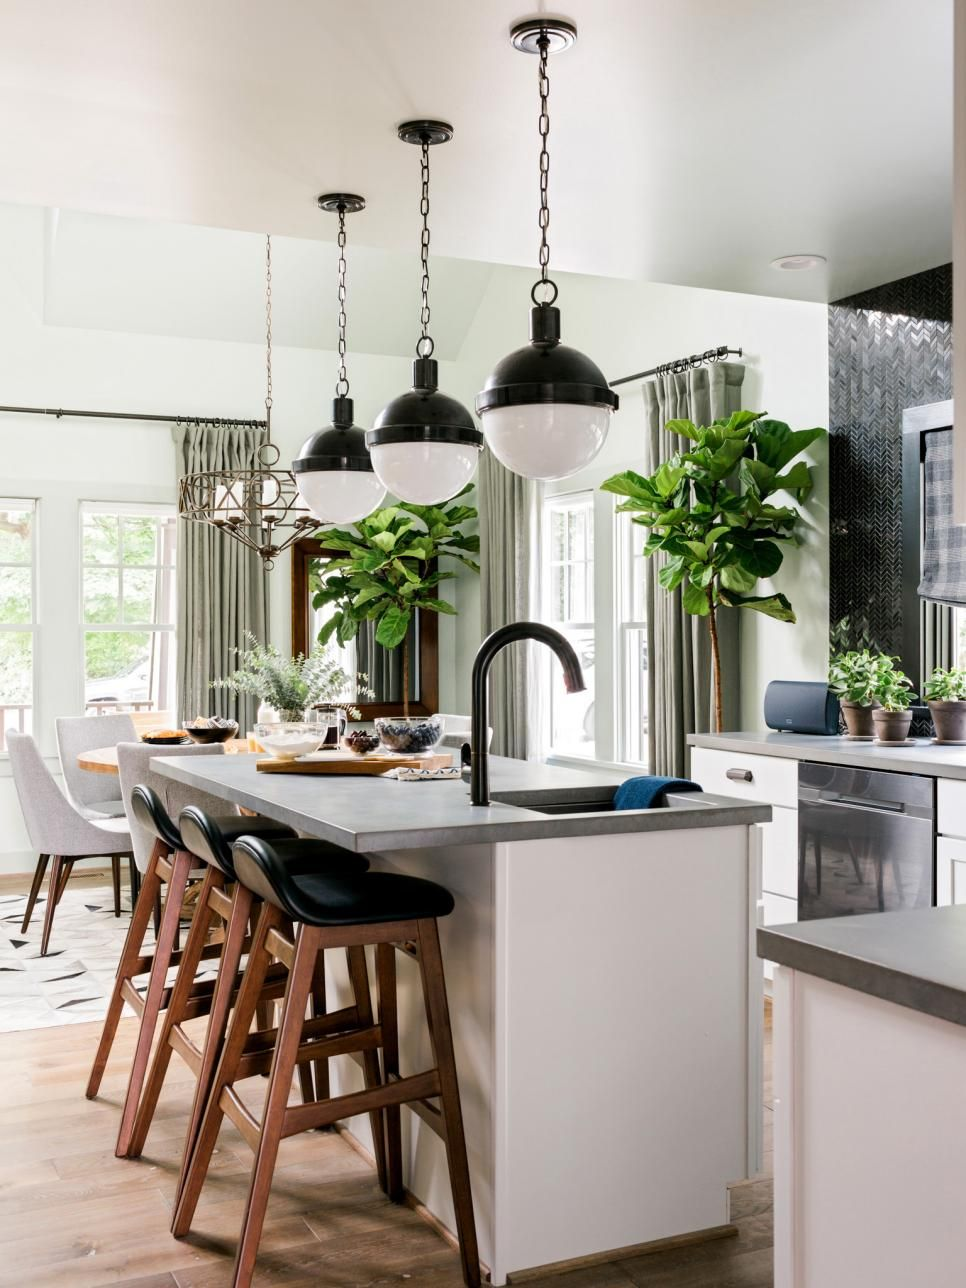 Kitchen Pictures From Hgtv Urban Oasis 2016  Islas Y Oasis Glamorous Small Kitchen Design Ideas 2014 Decorating Inspiration